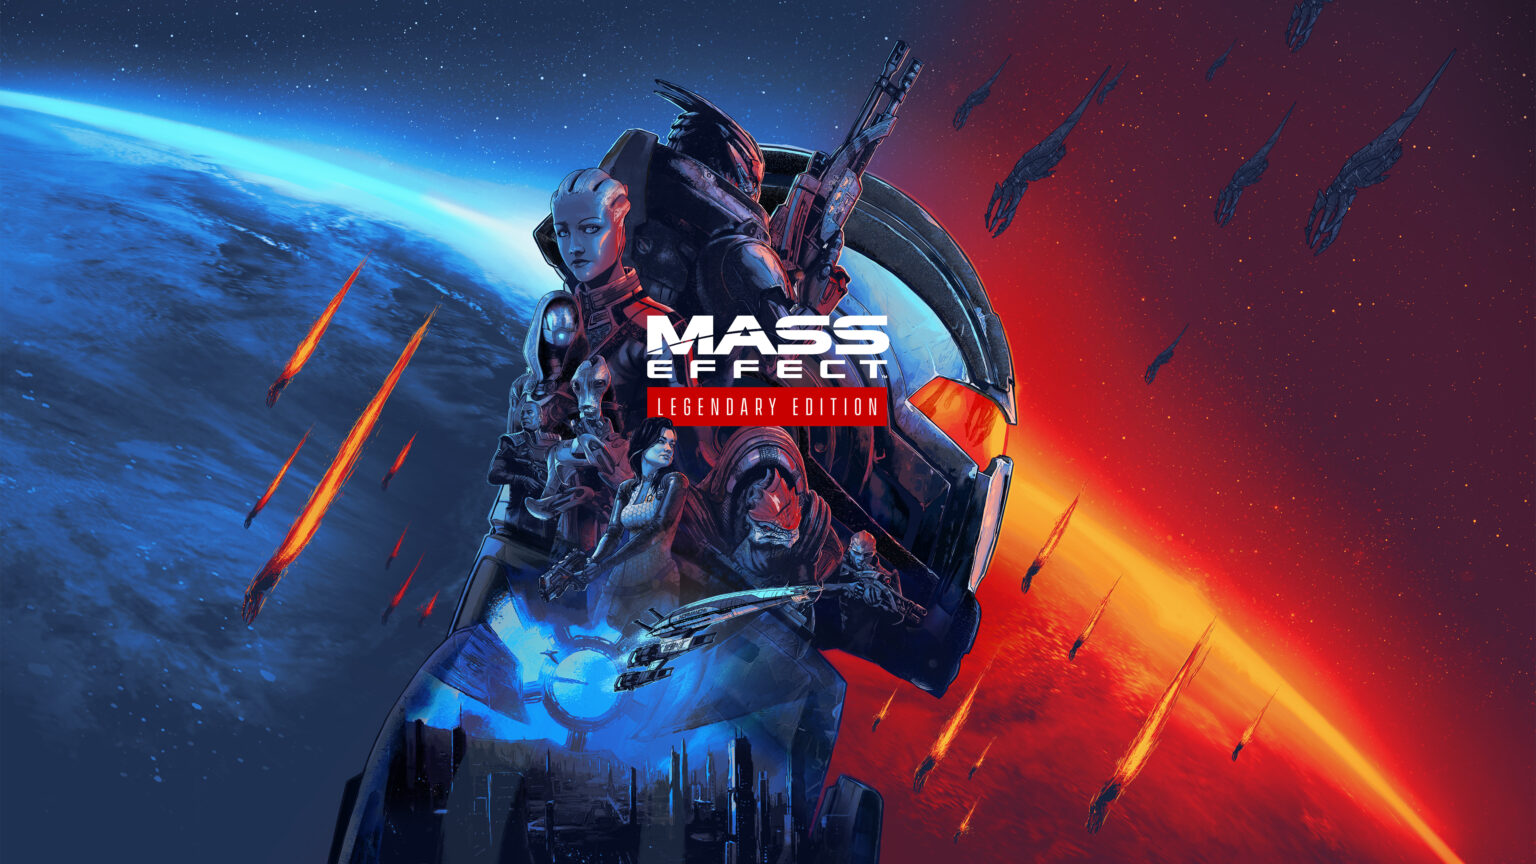 BioWare details many of the gameplay changes coming to Mass Effect: Legendary Edition